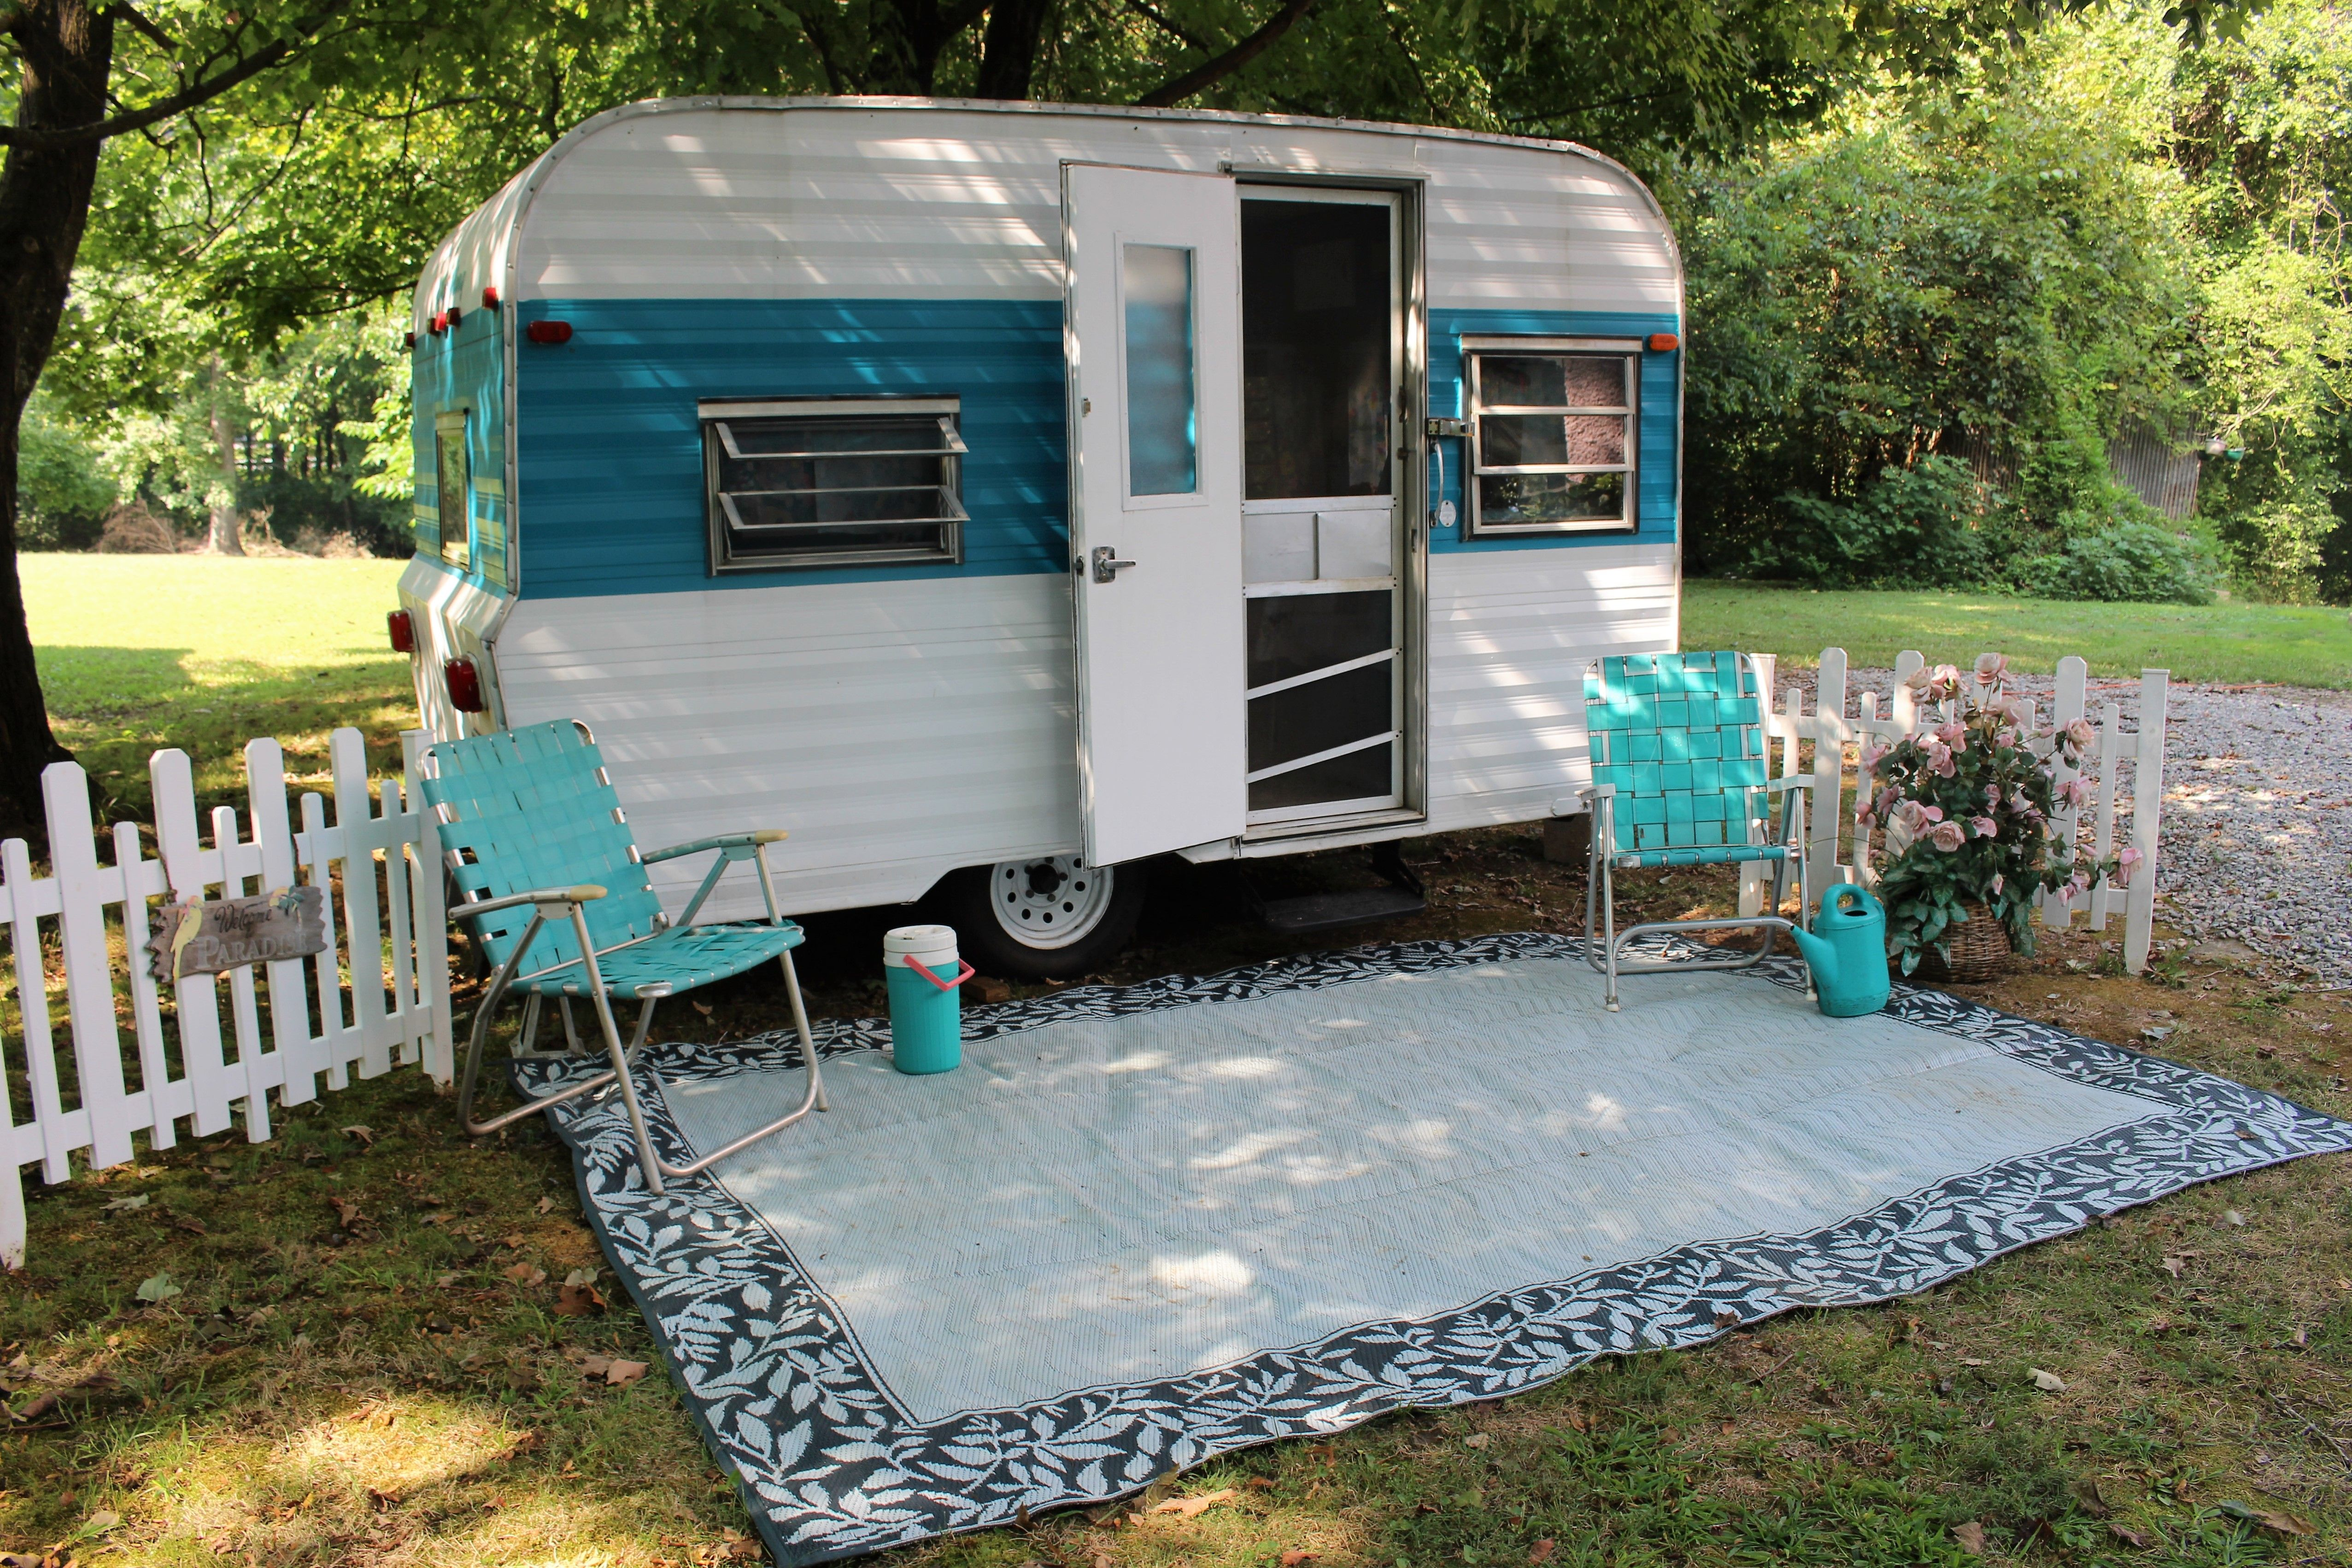 1978 Go Tag Along For Sale Renovation Caravane Caravane Deco Interieure